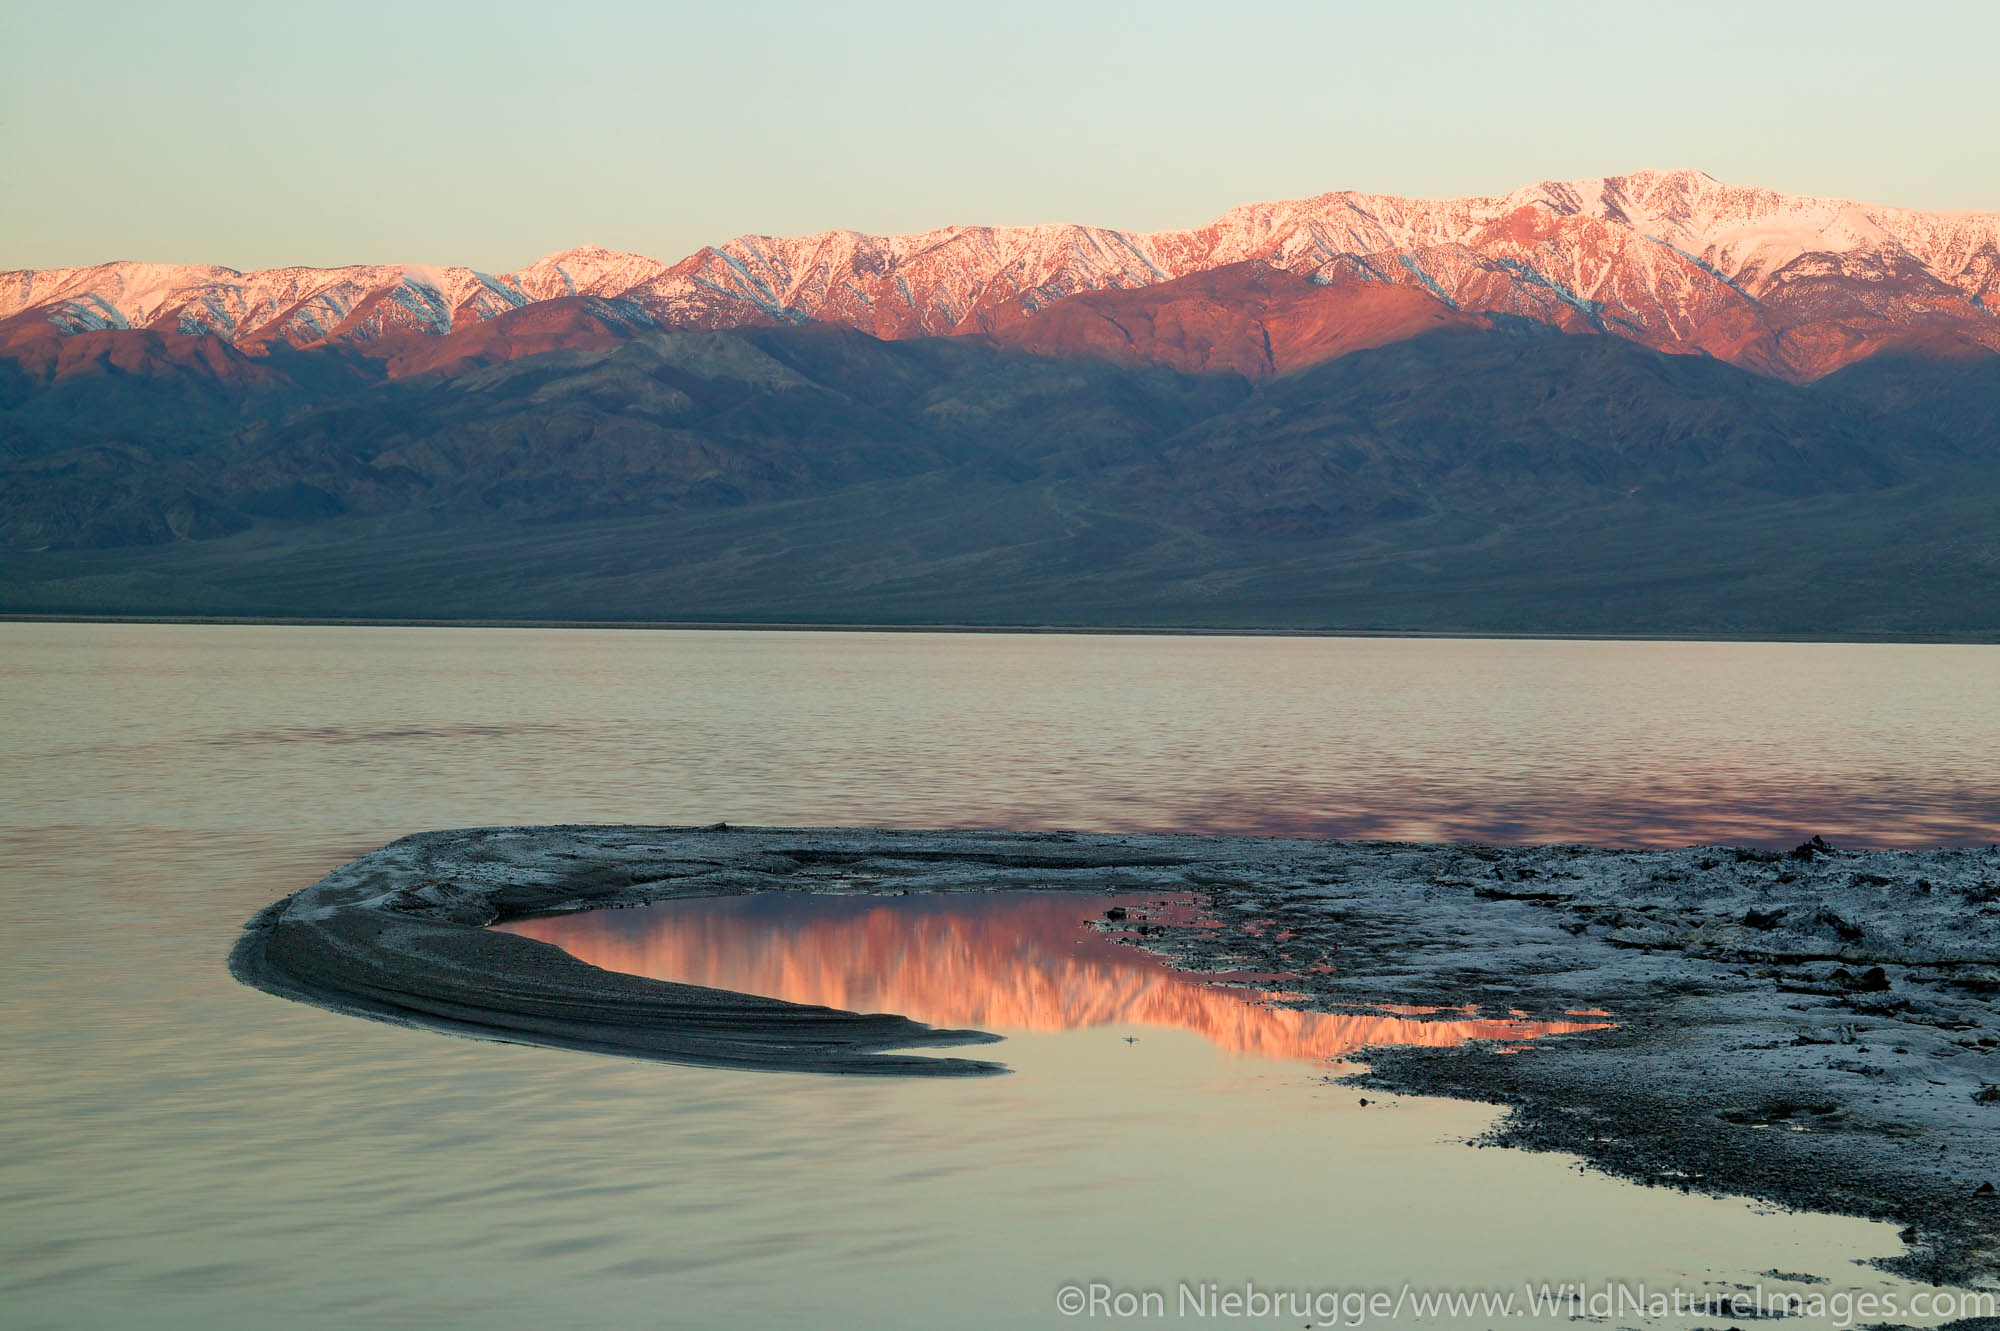 Water from heavy rains fill the Badwater Basin into a lake in 2005.  Death Valley National Park, California.